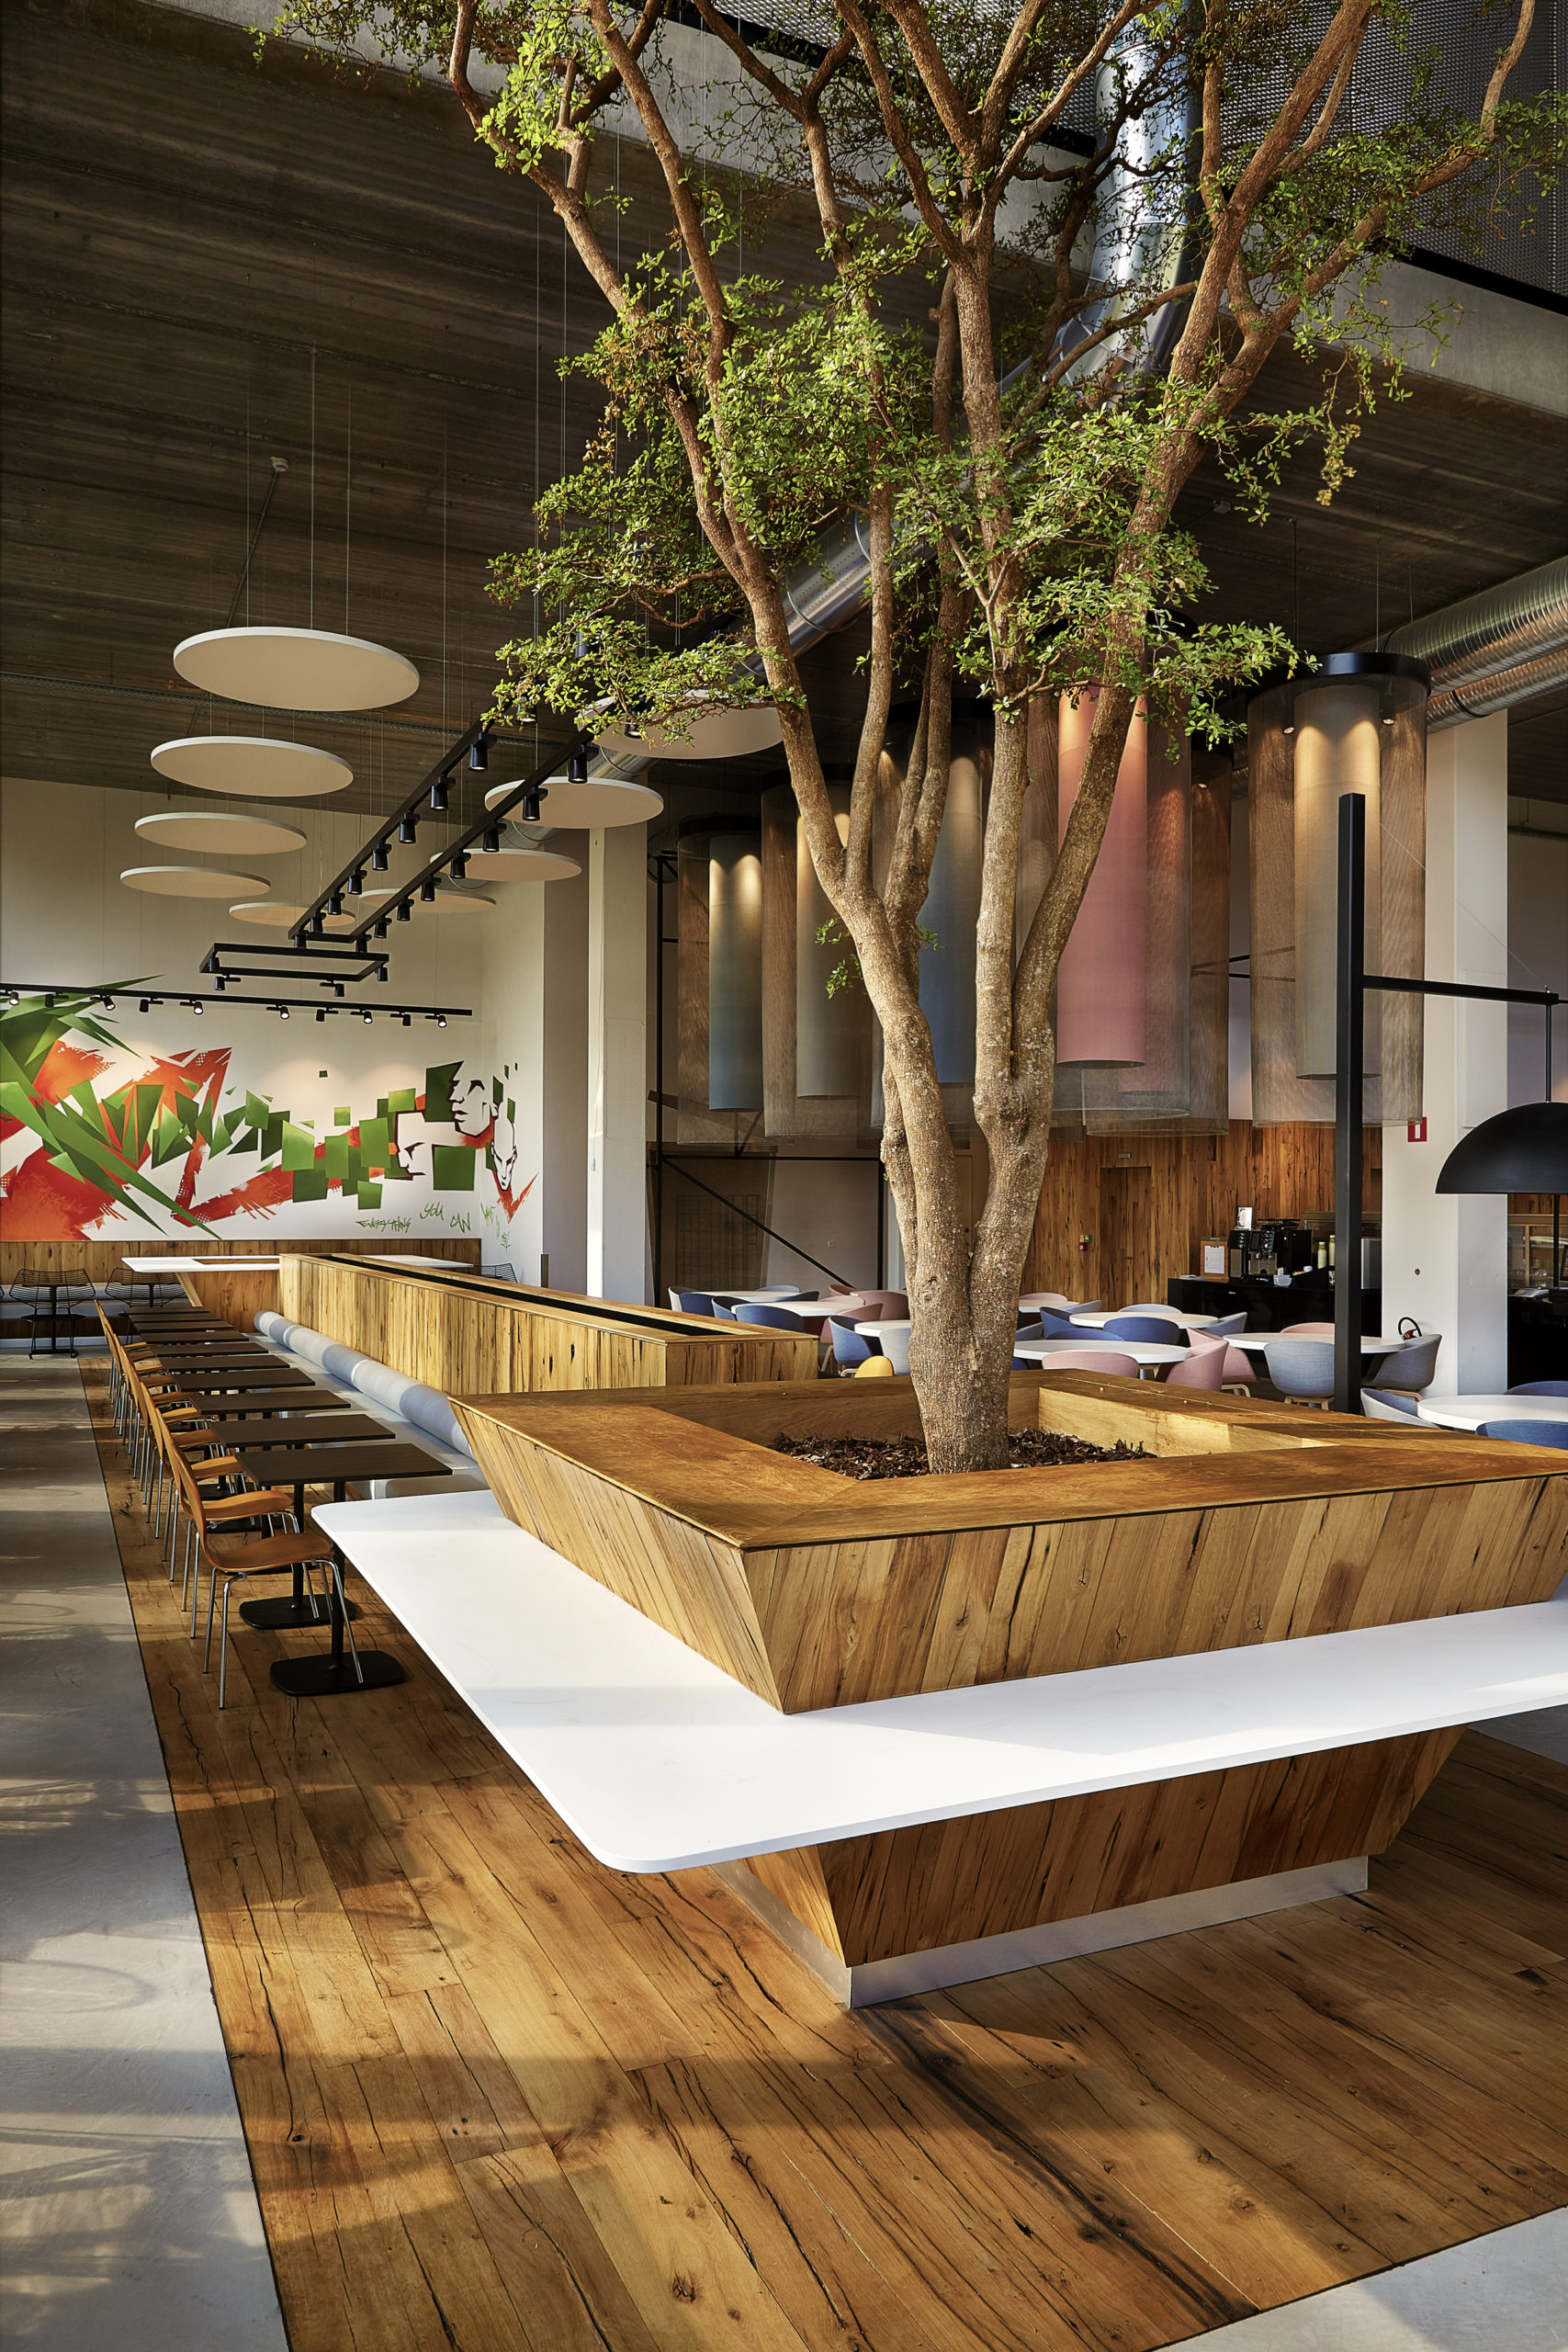 The Ezplanade restaurant designed by ncbham brings a new form of urban nature